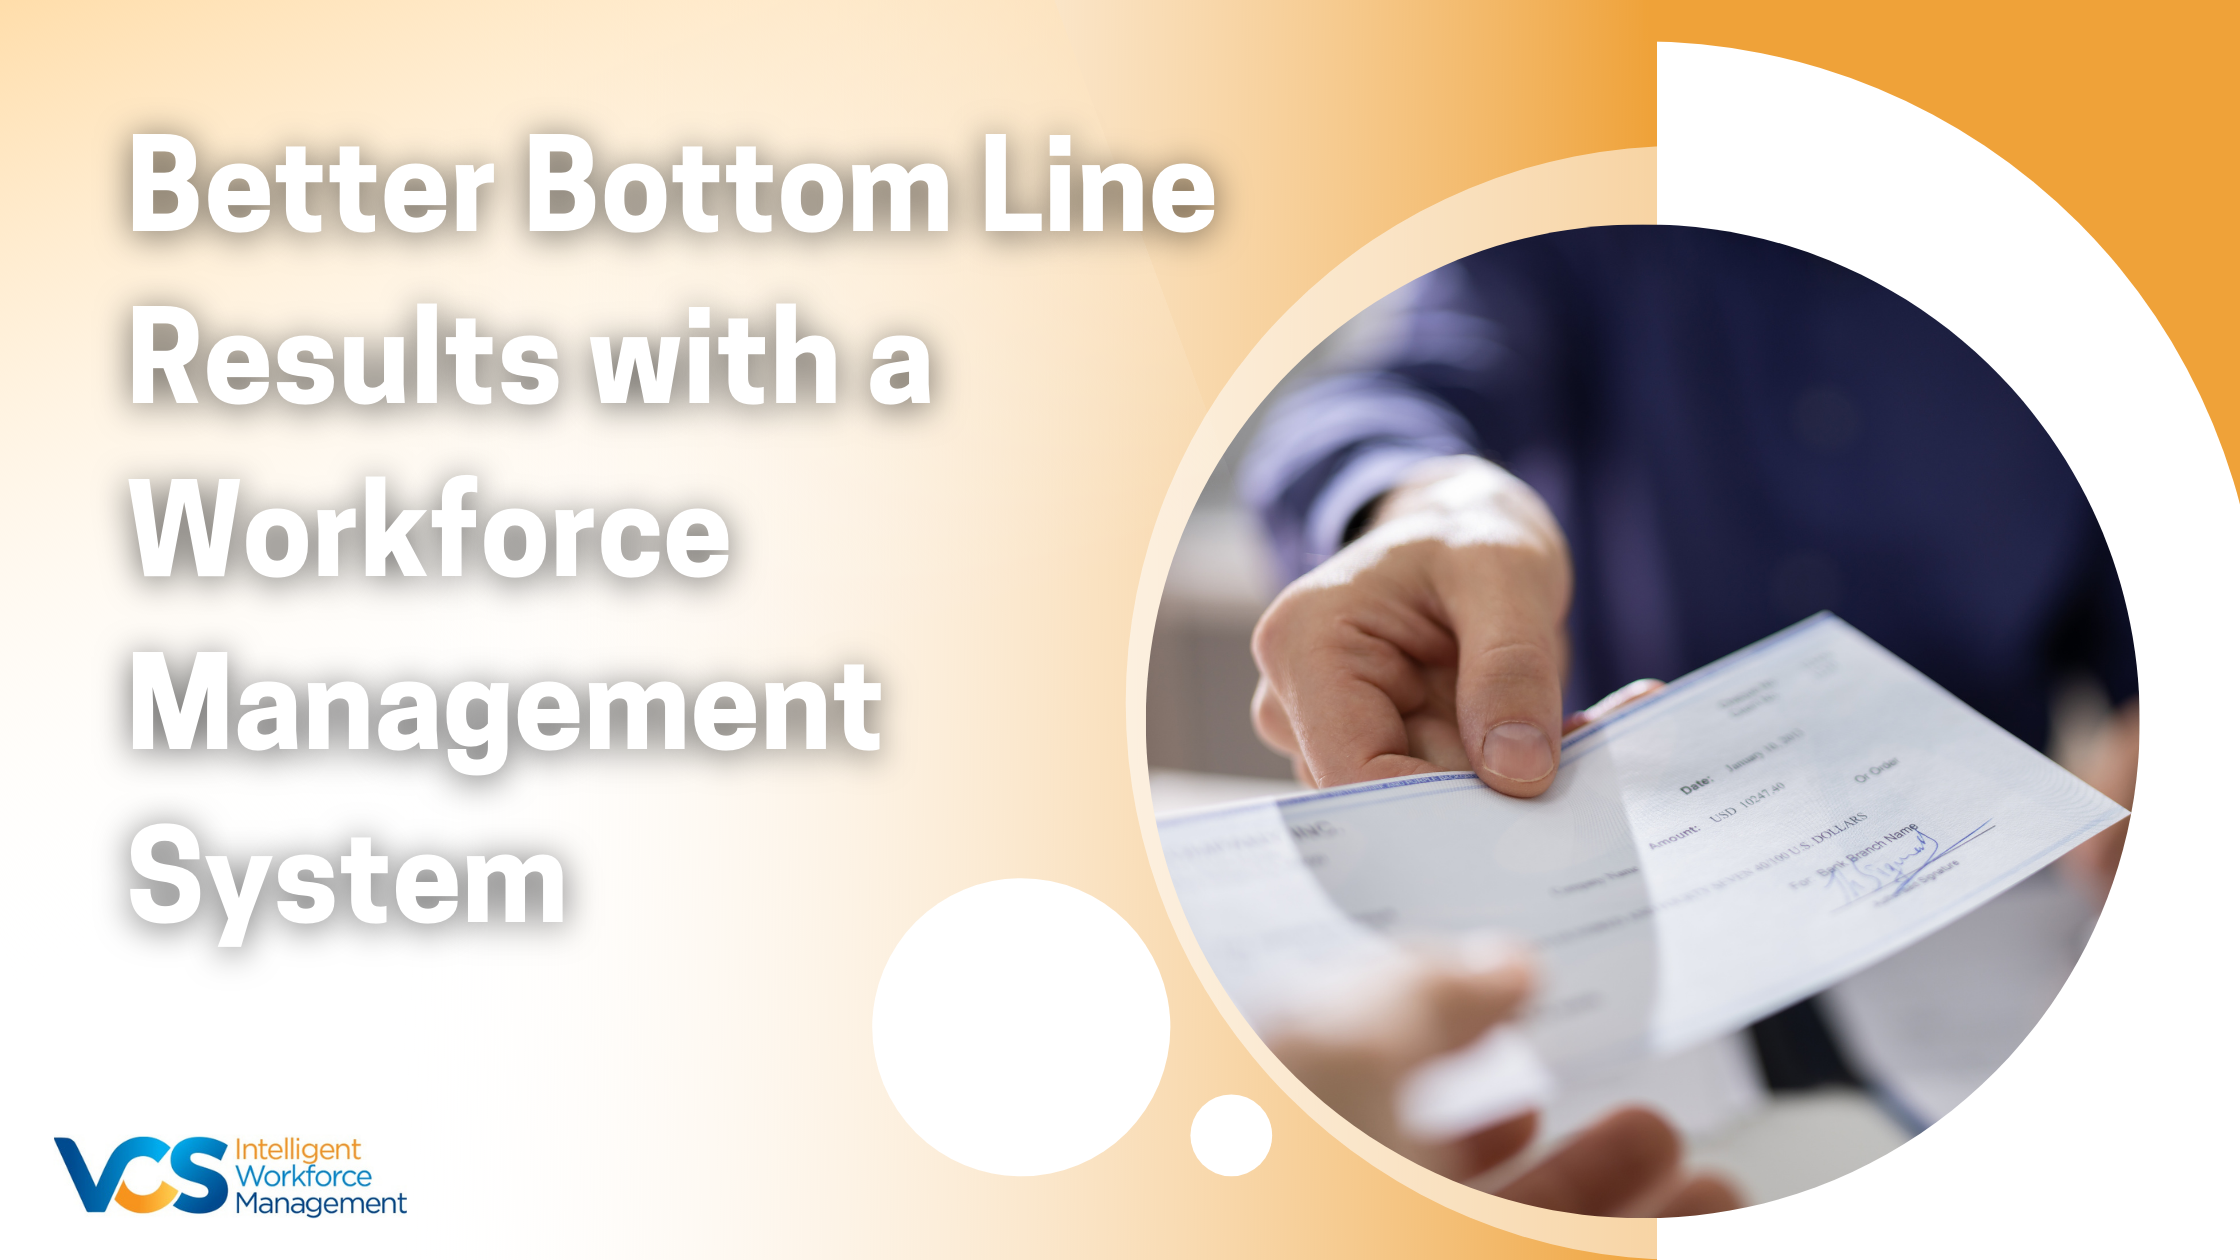 Better Bottom Line Results with a Workforce Management System